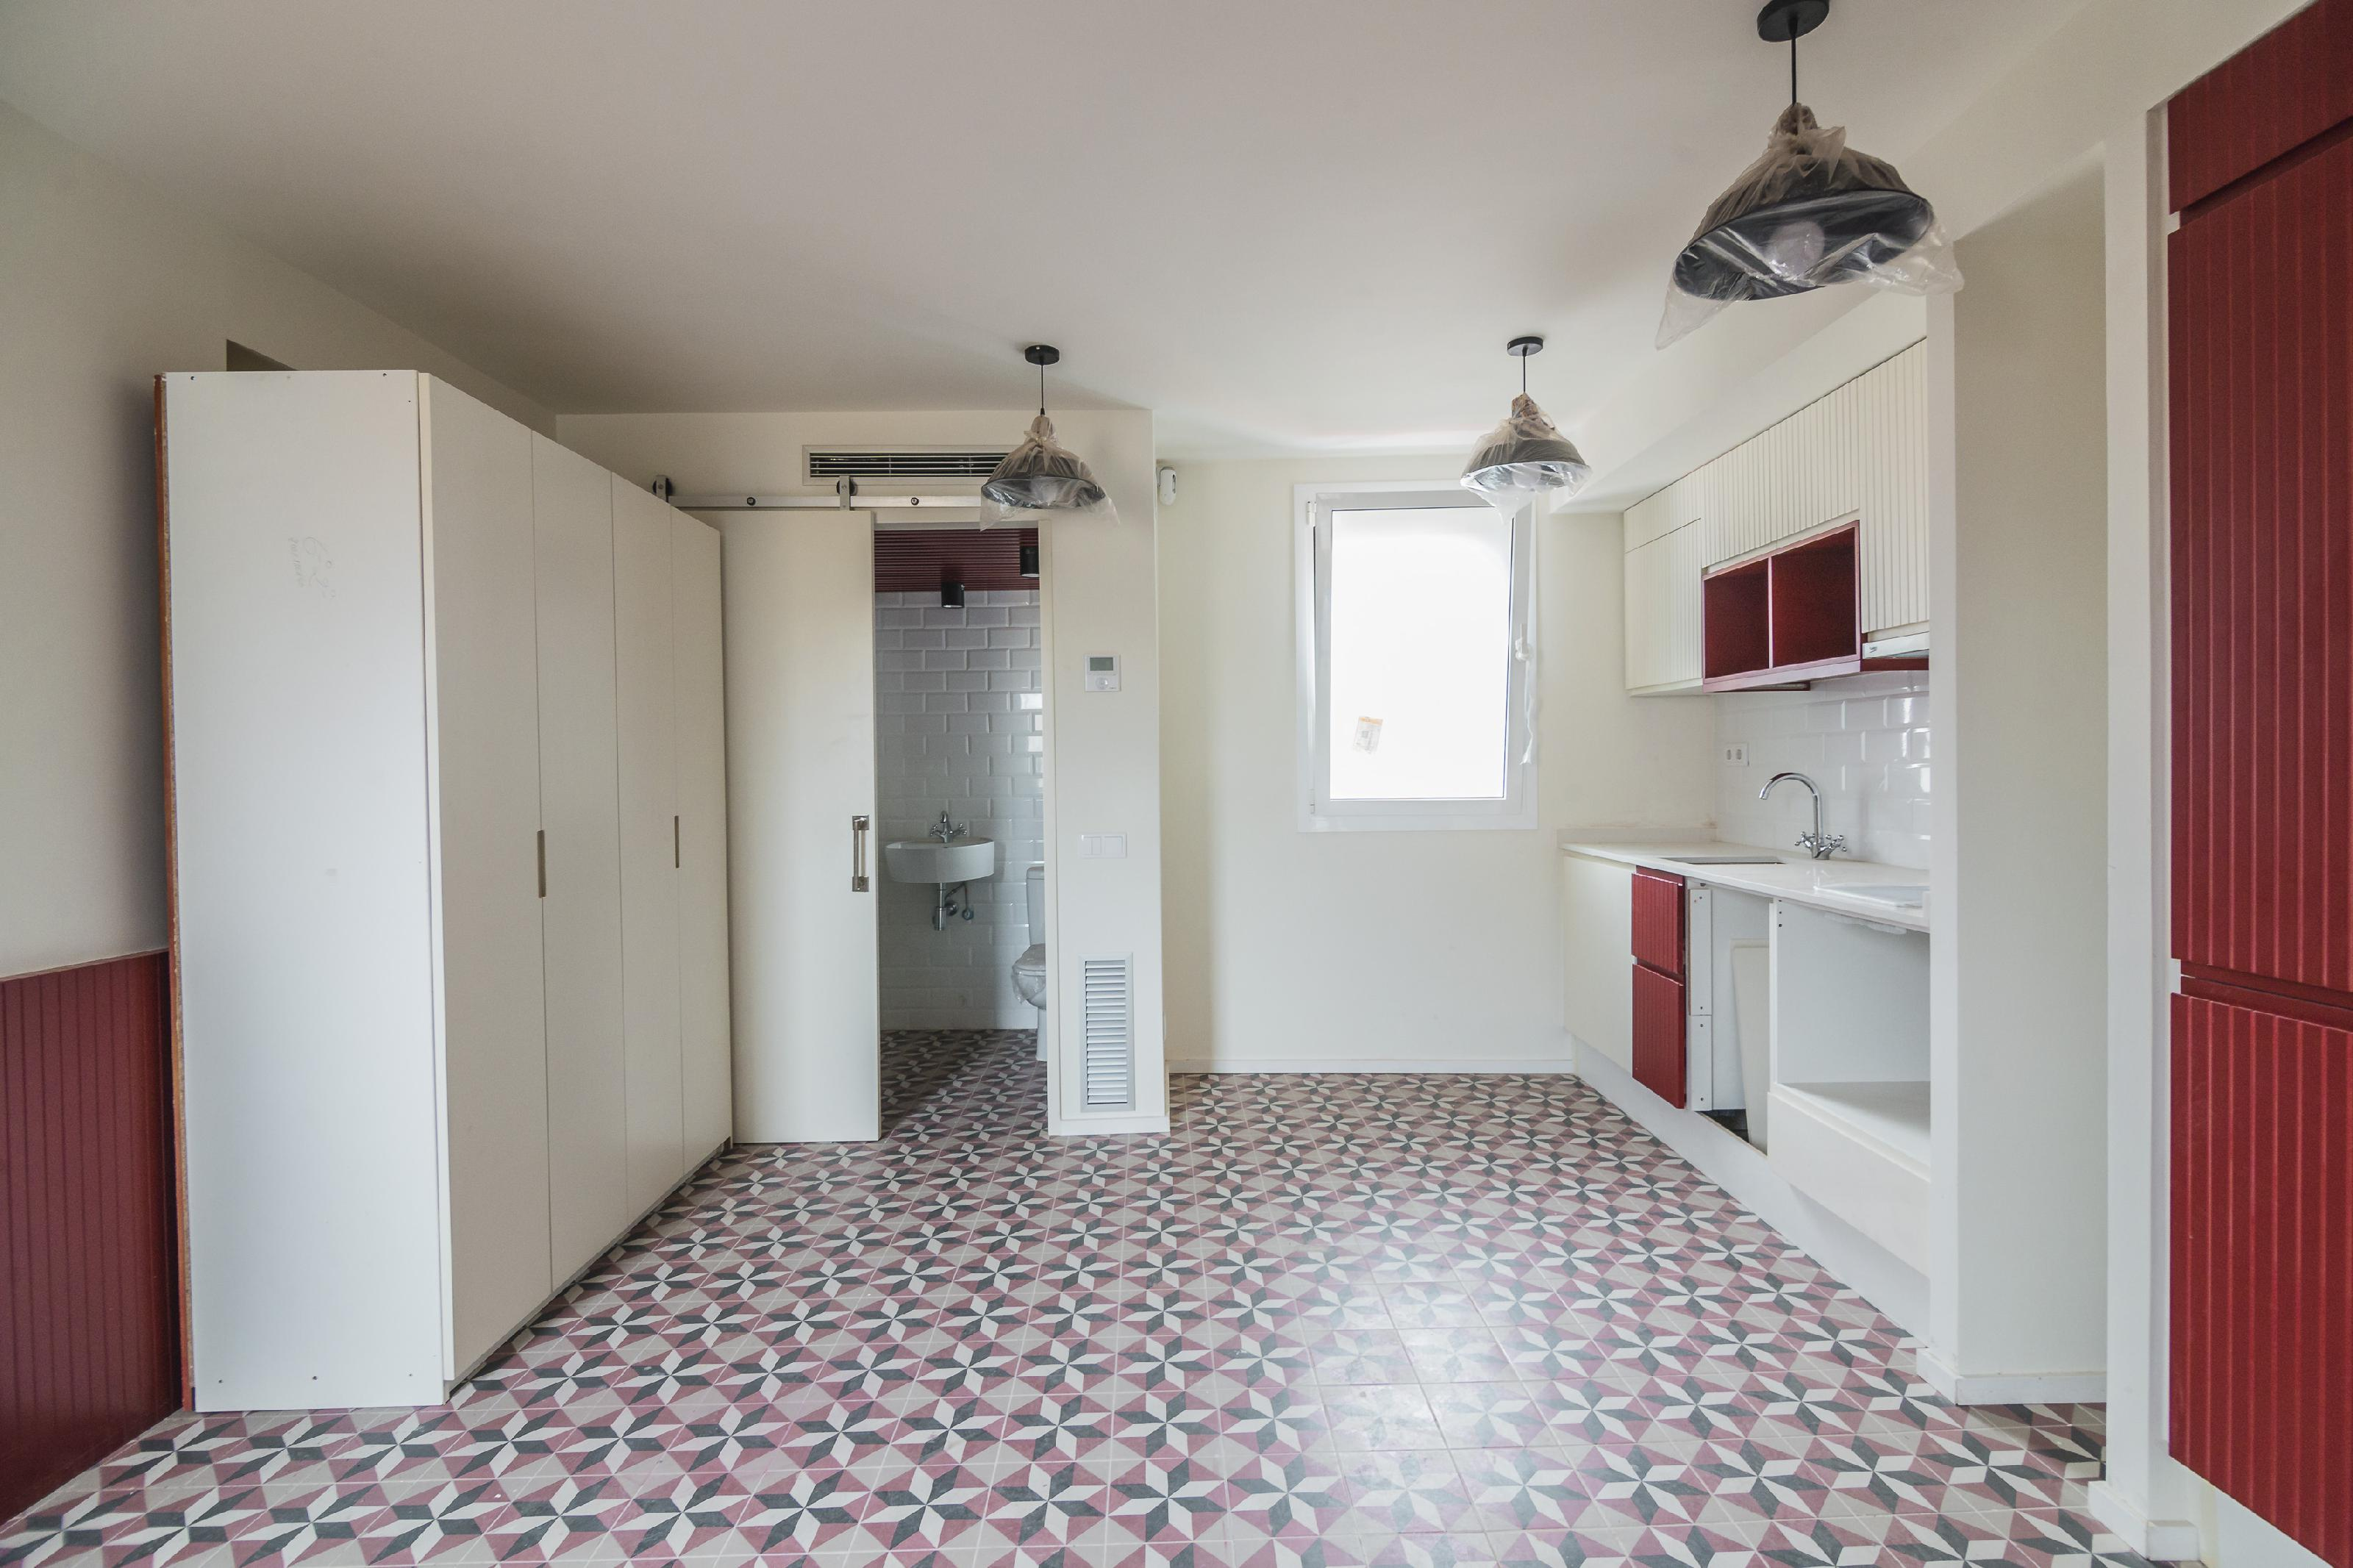 237520 Flat for sale in Ciutat Vella, St. Pere St. Caterina and La Ribera 8